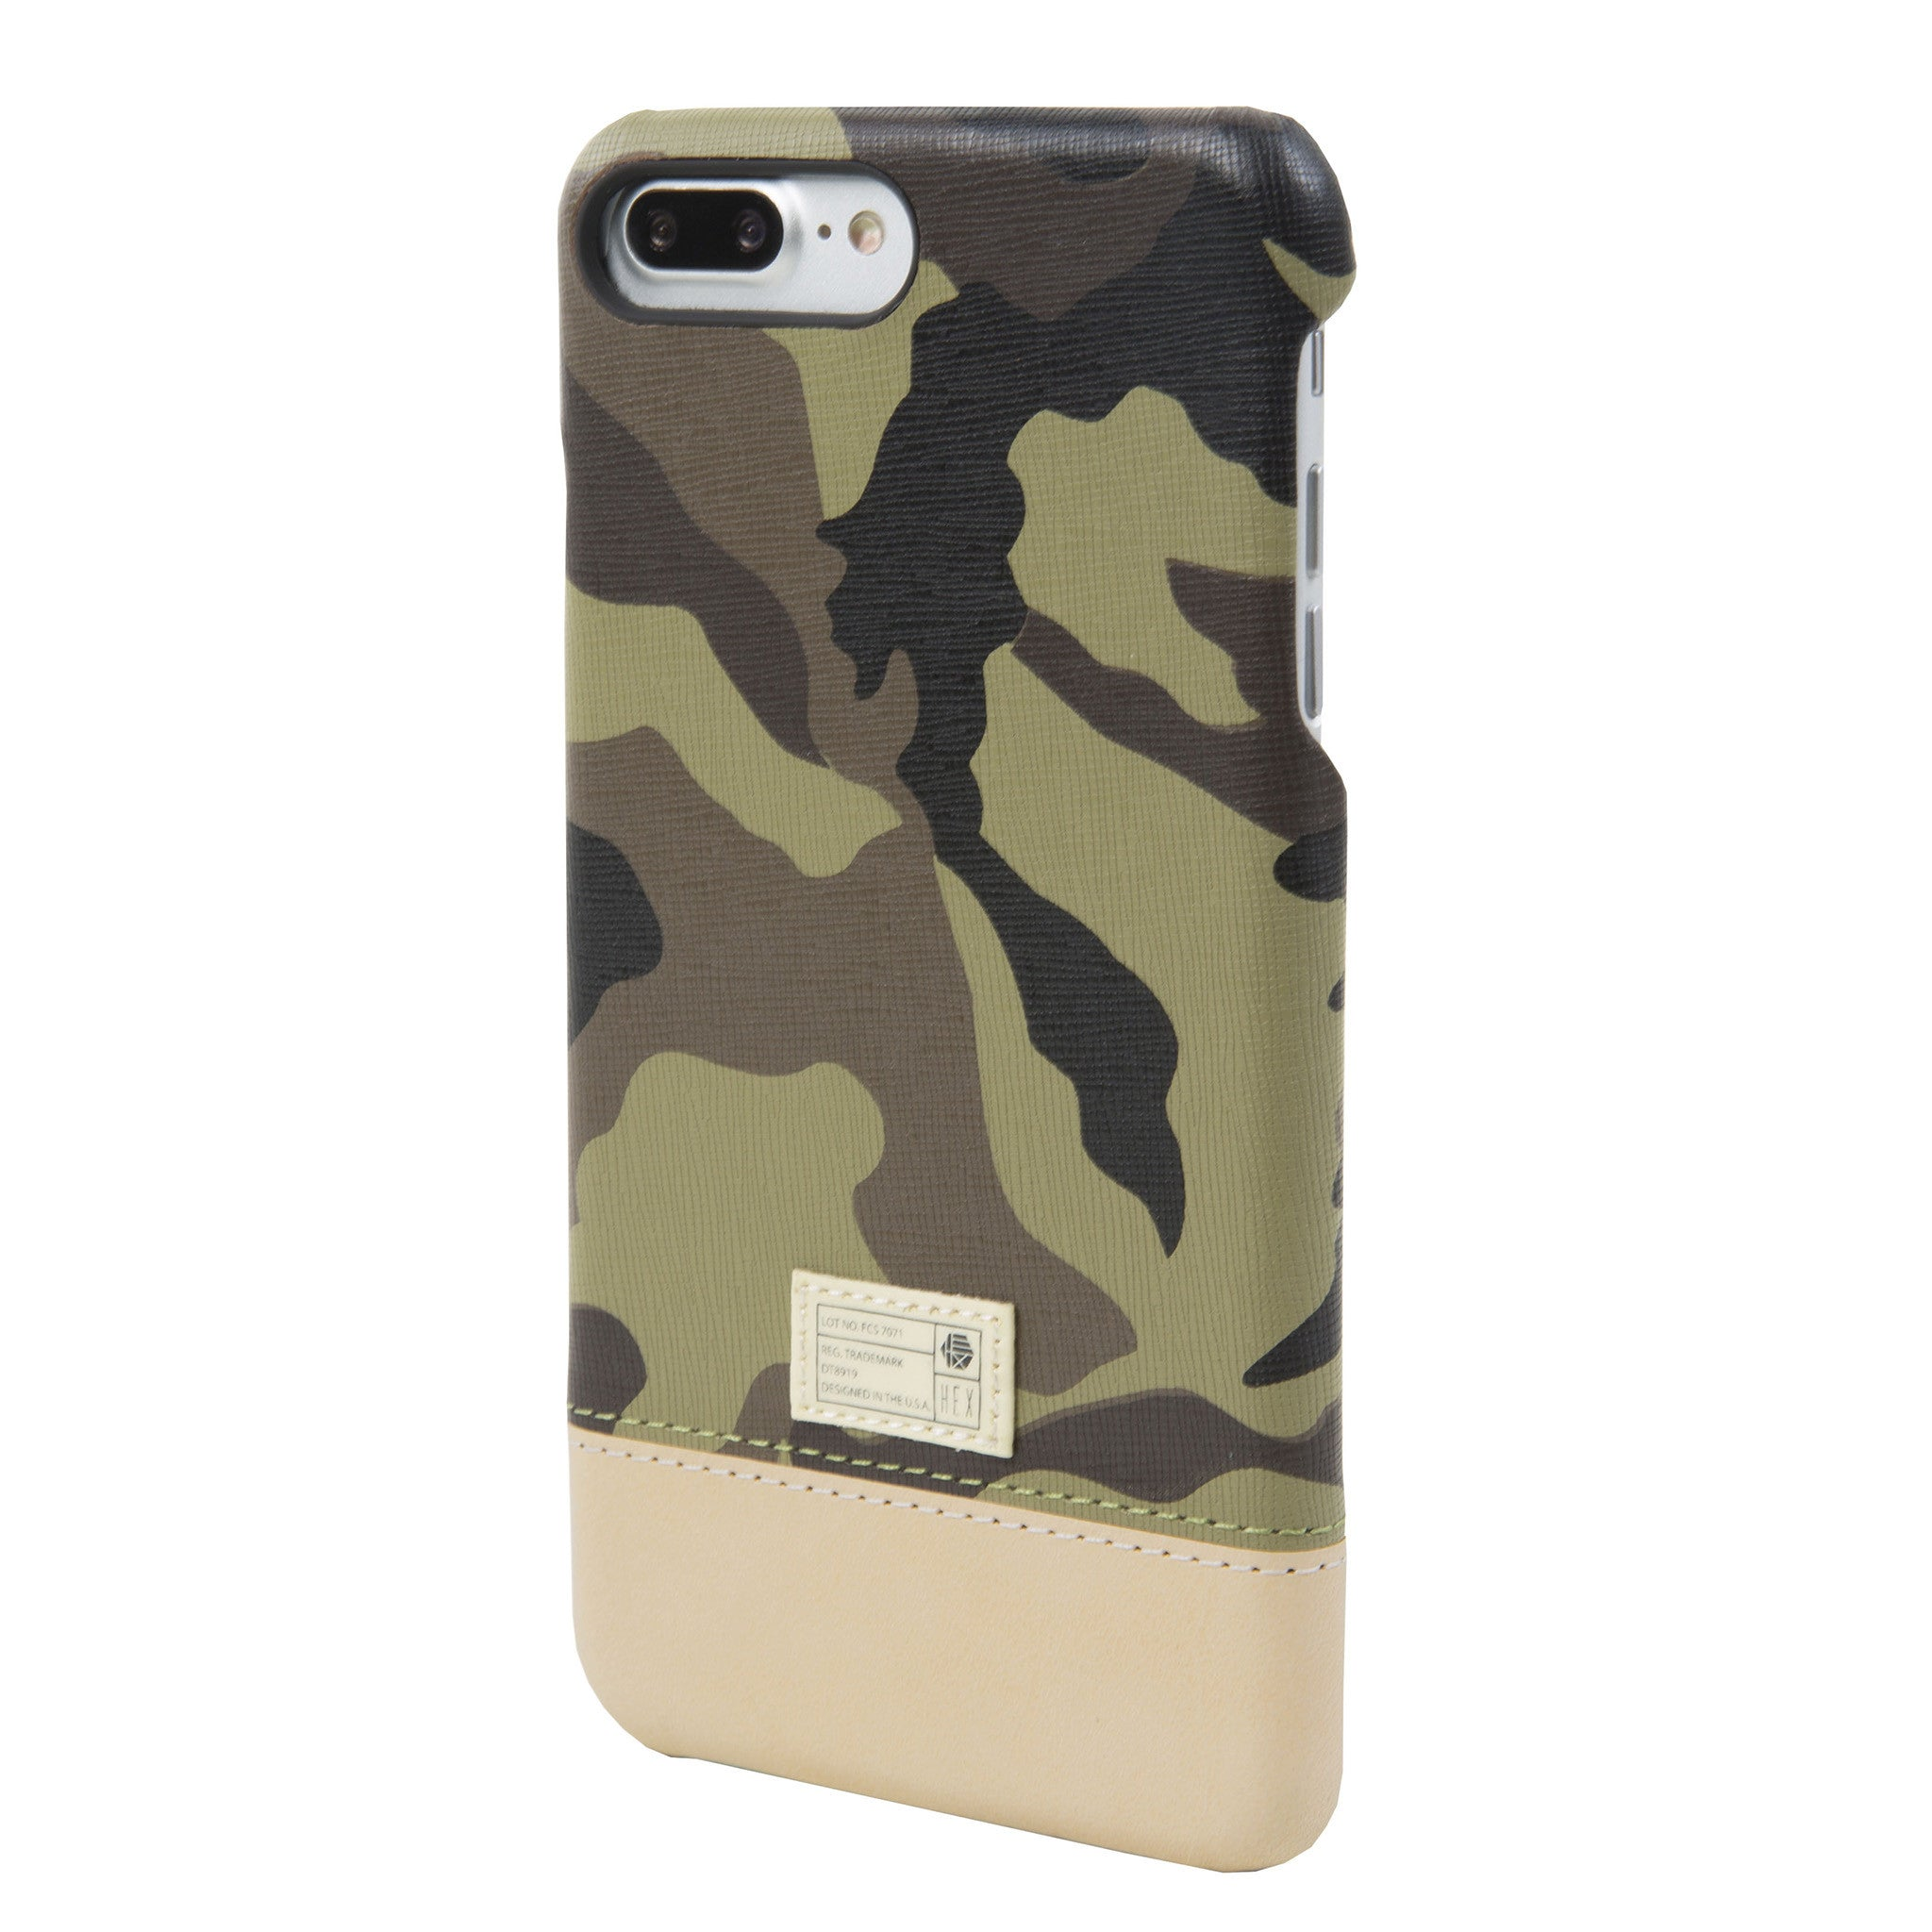 the best attitude 7bde7 21ace Camo Leather Focus Case for iPhone 7/8 Plus